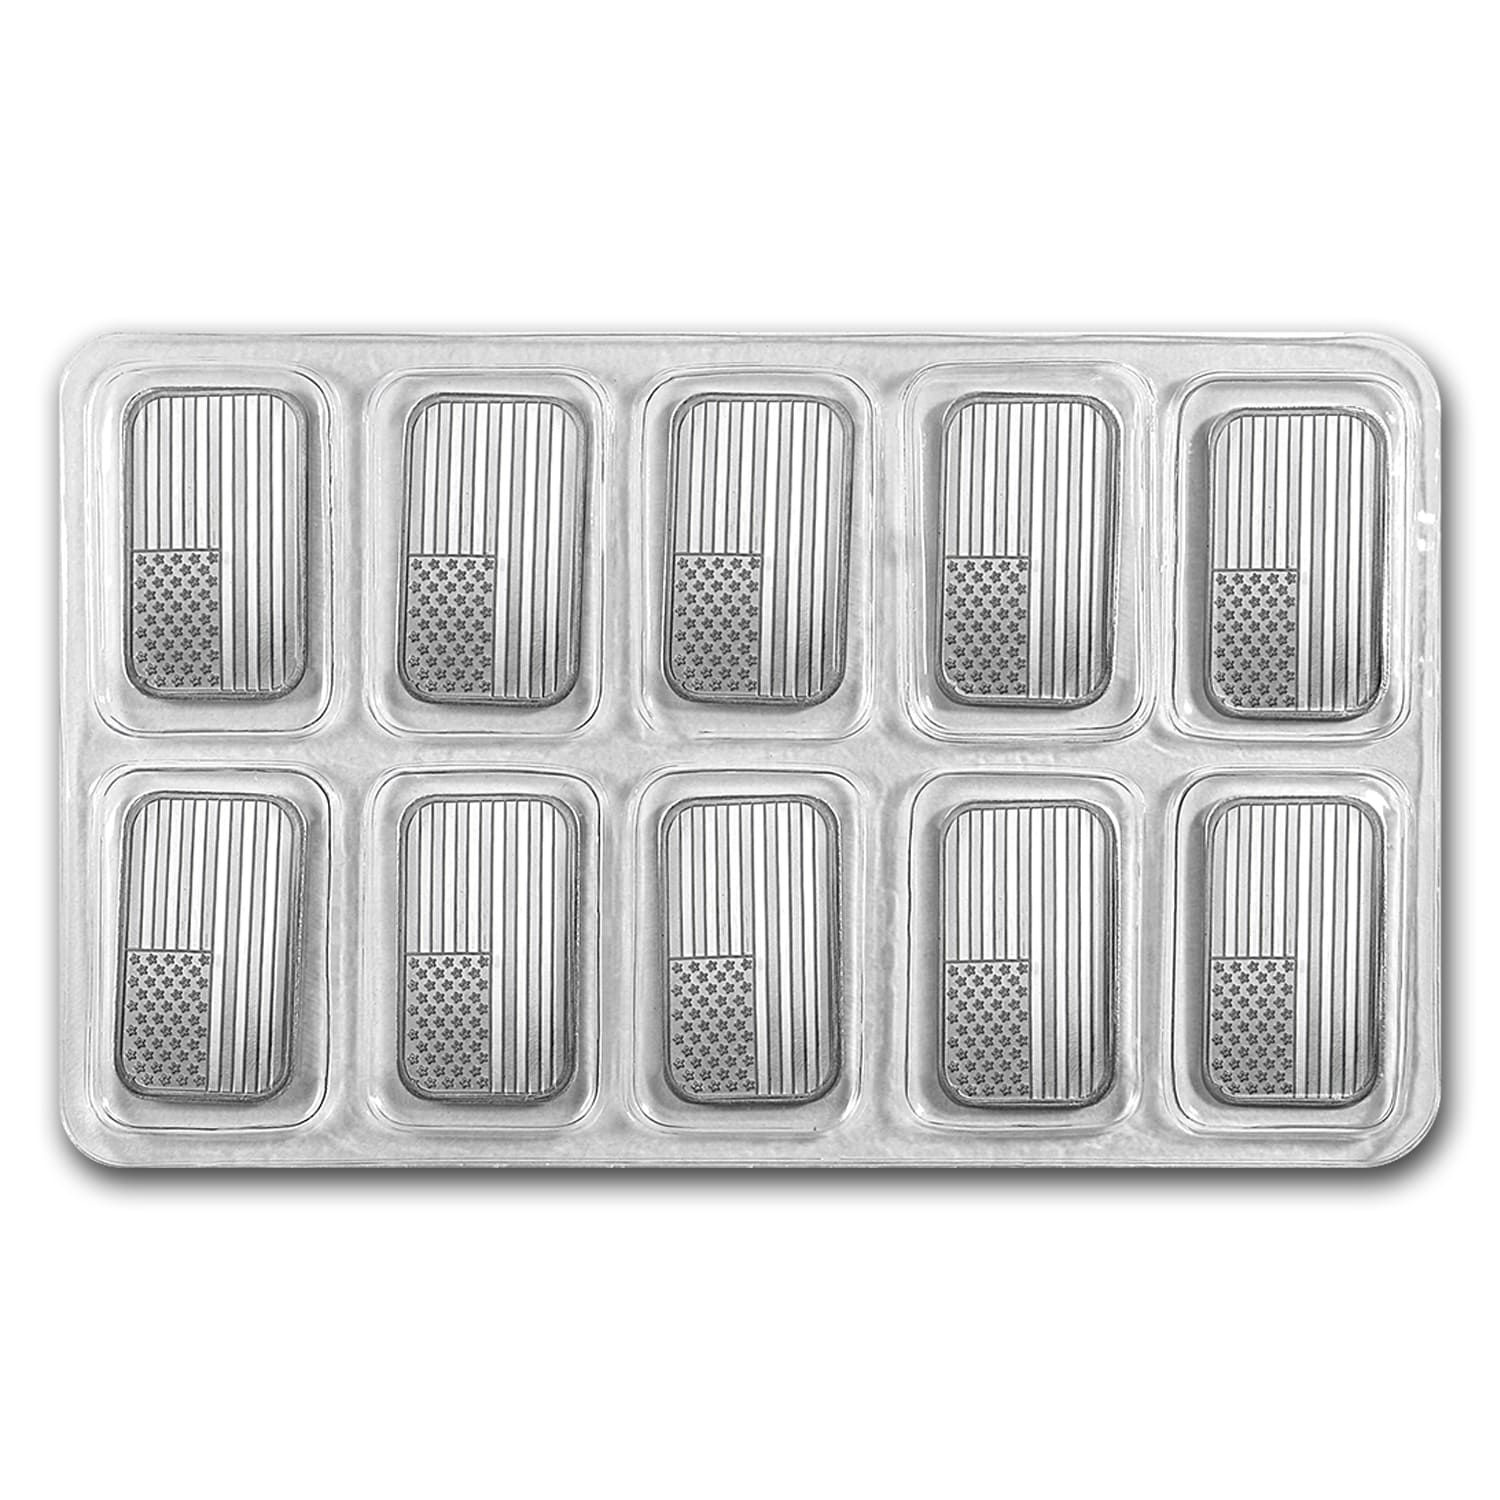 1 oz Silver Bars - American Flag Design